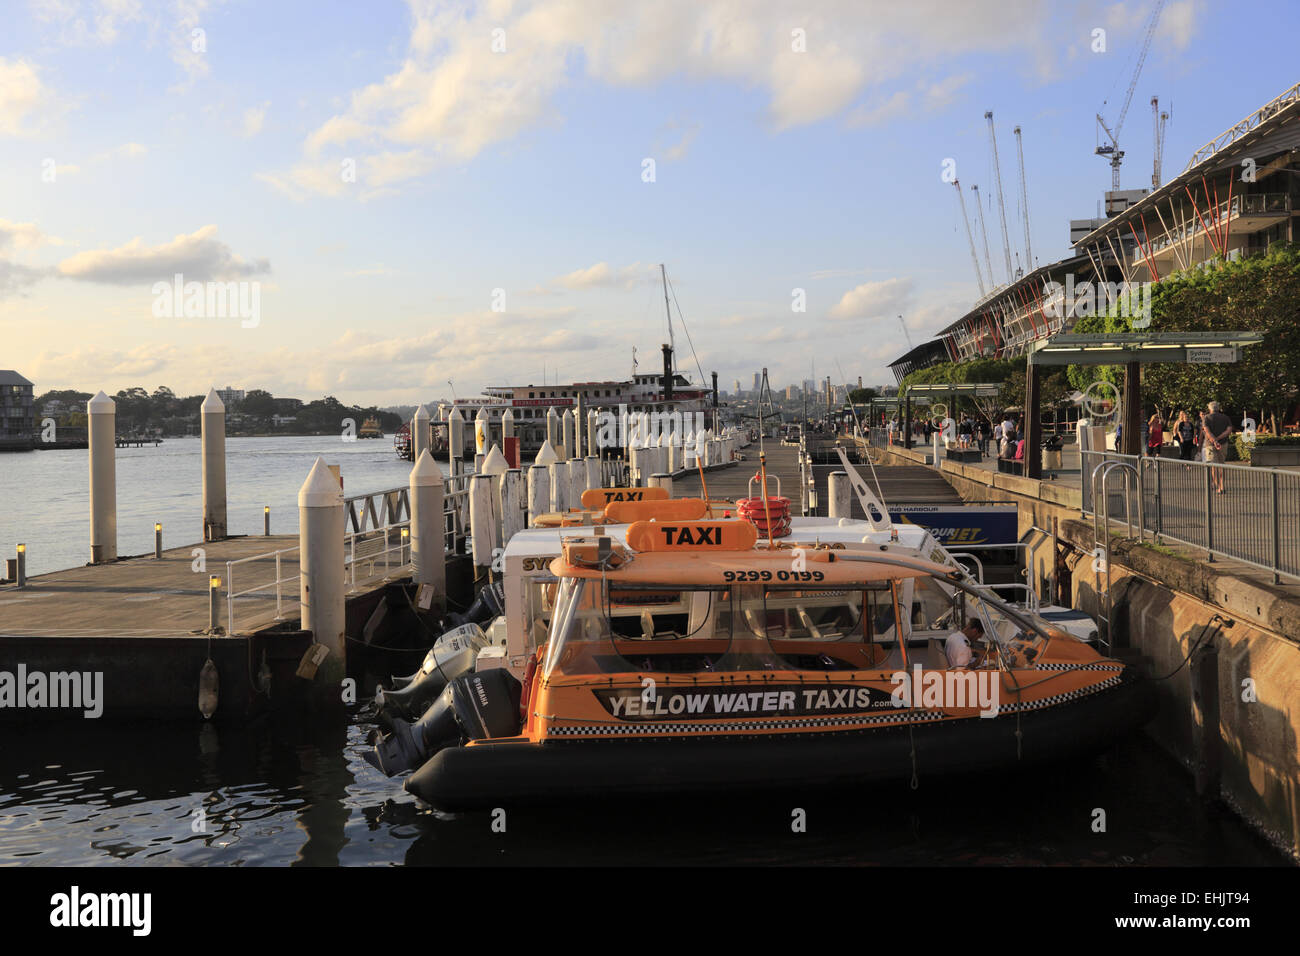 Water taxis docking in Darling Harbour, Sydney, Australia - Stock Image